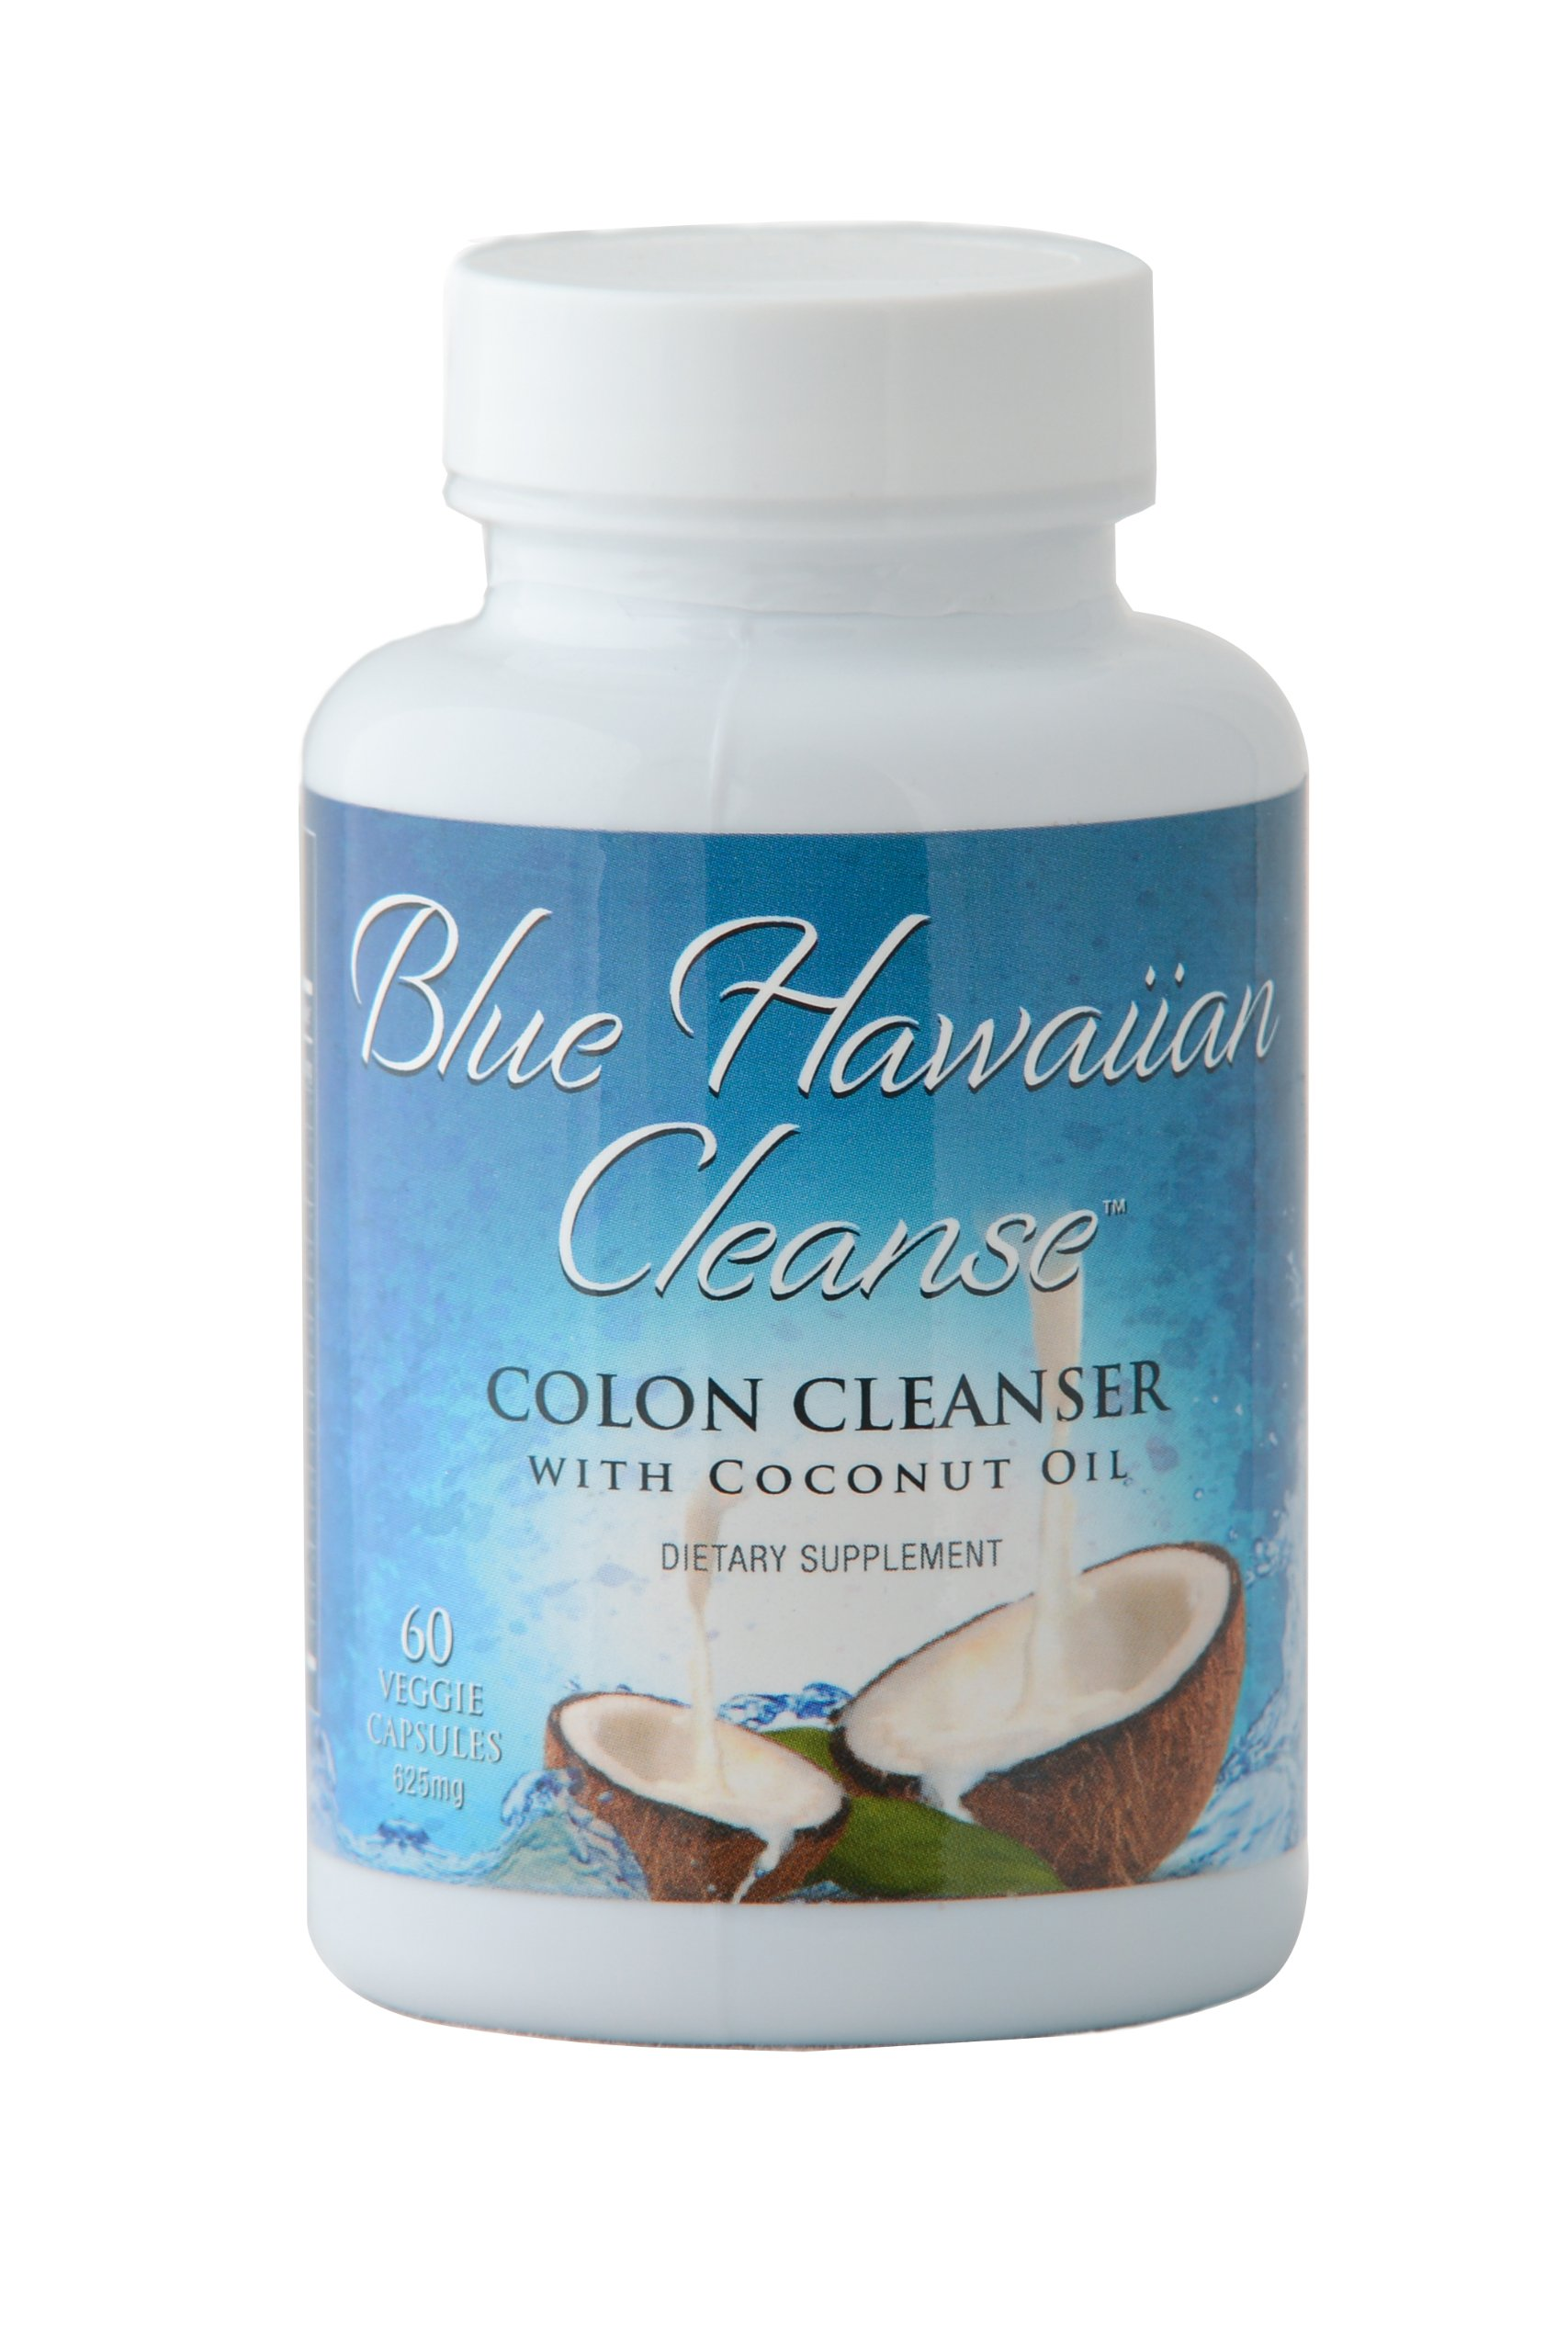 Blue Hawaiian Cleanse - Colon Cleanser with Coconut Oil - 60 vcaps | Professional Strength Formula Enhanced with Senna, Flax, Psyllium, Ginger and Black Walnut | Removes Intestinal Plaque with Mild Laxative Effect by Blue Hawaiian Cleanse (Image #2)